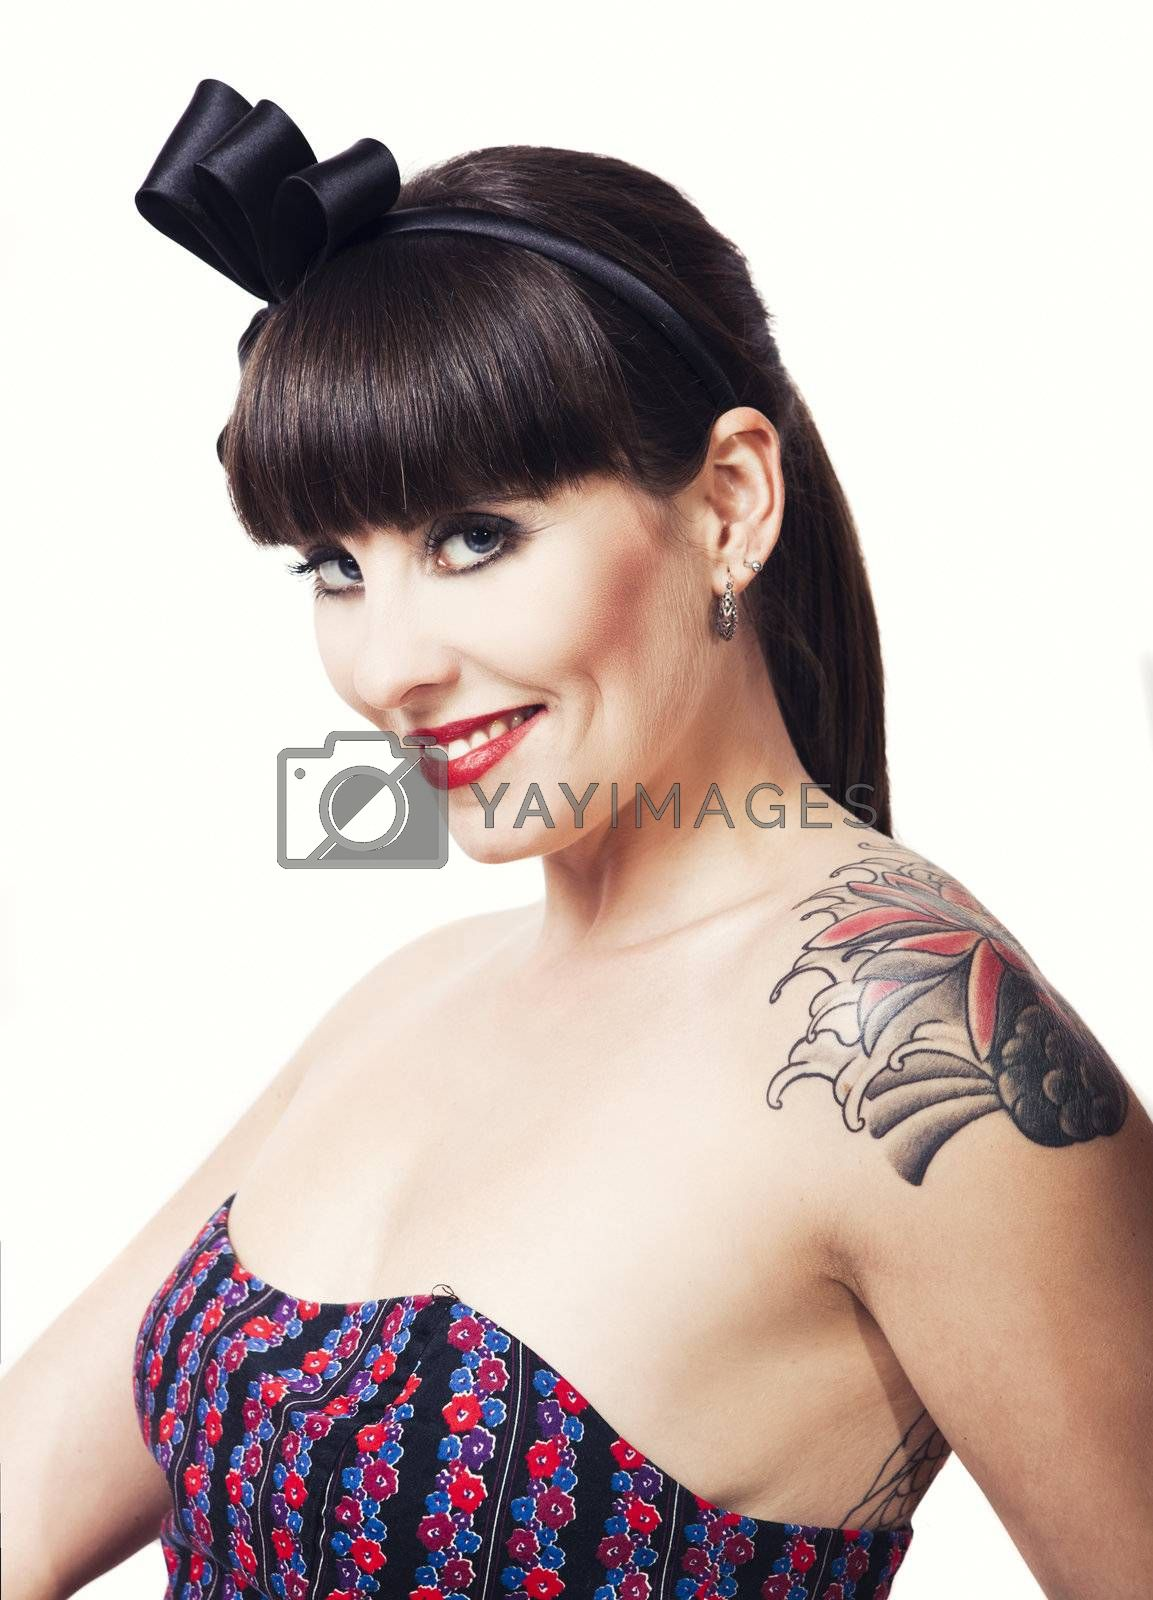 Beautiful woman with a vintage look posing, isolated over a white background